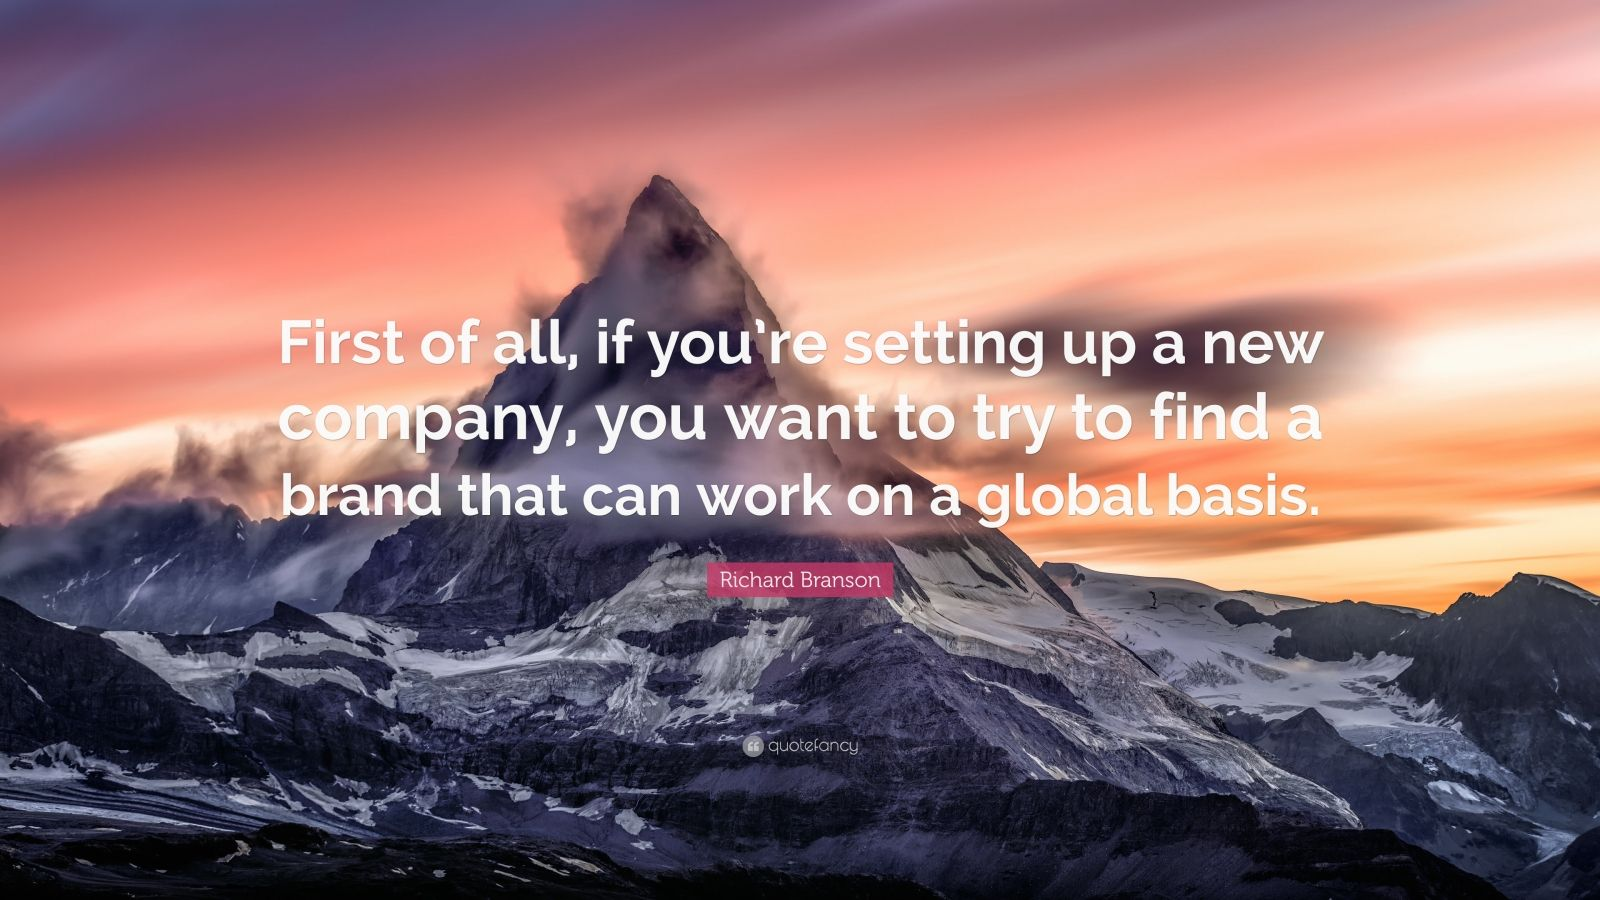 """Richard Branson Quote: """"First of all, if you're setting up a new company, you want to try to find a brand that can work on a global basis."""""""